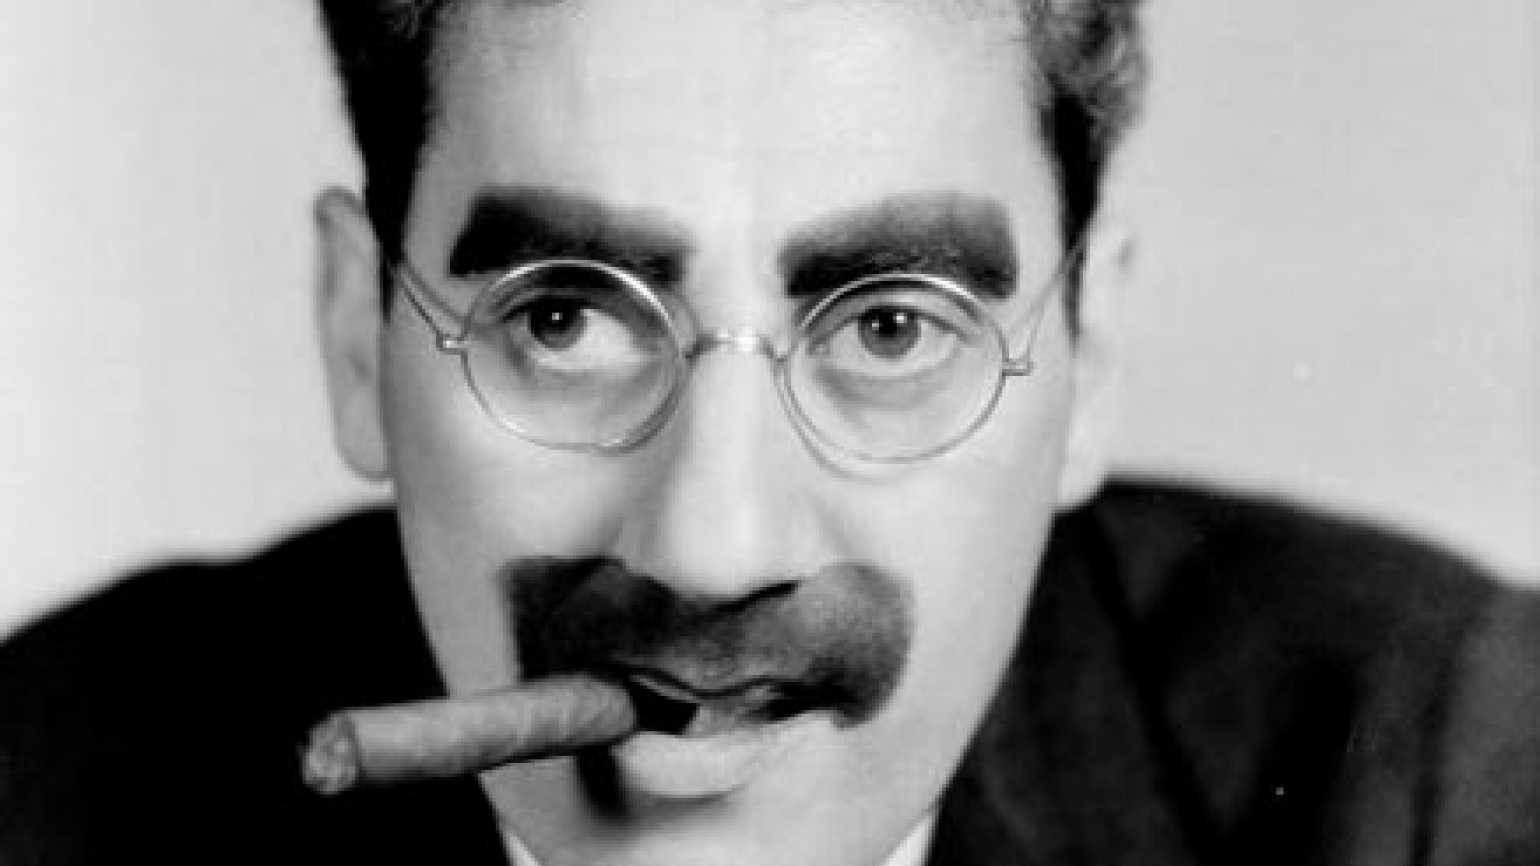 Groucho Marx with a cigar in his mouth